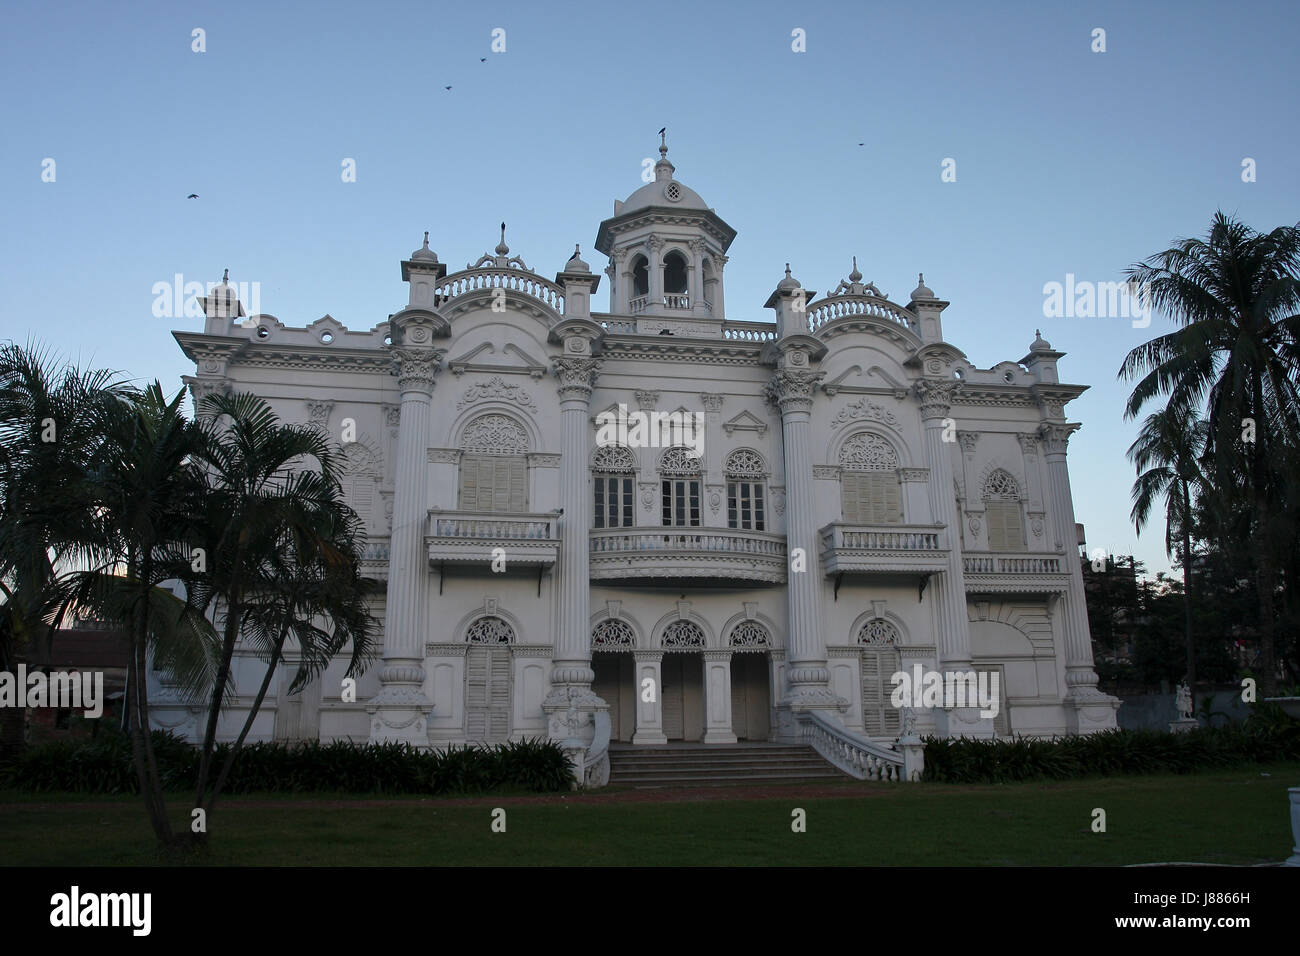 Rose Garden Palace   Rose Garden An Architectural Legacy Of Britsh Raj A  Most Beautiful Mansion